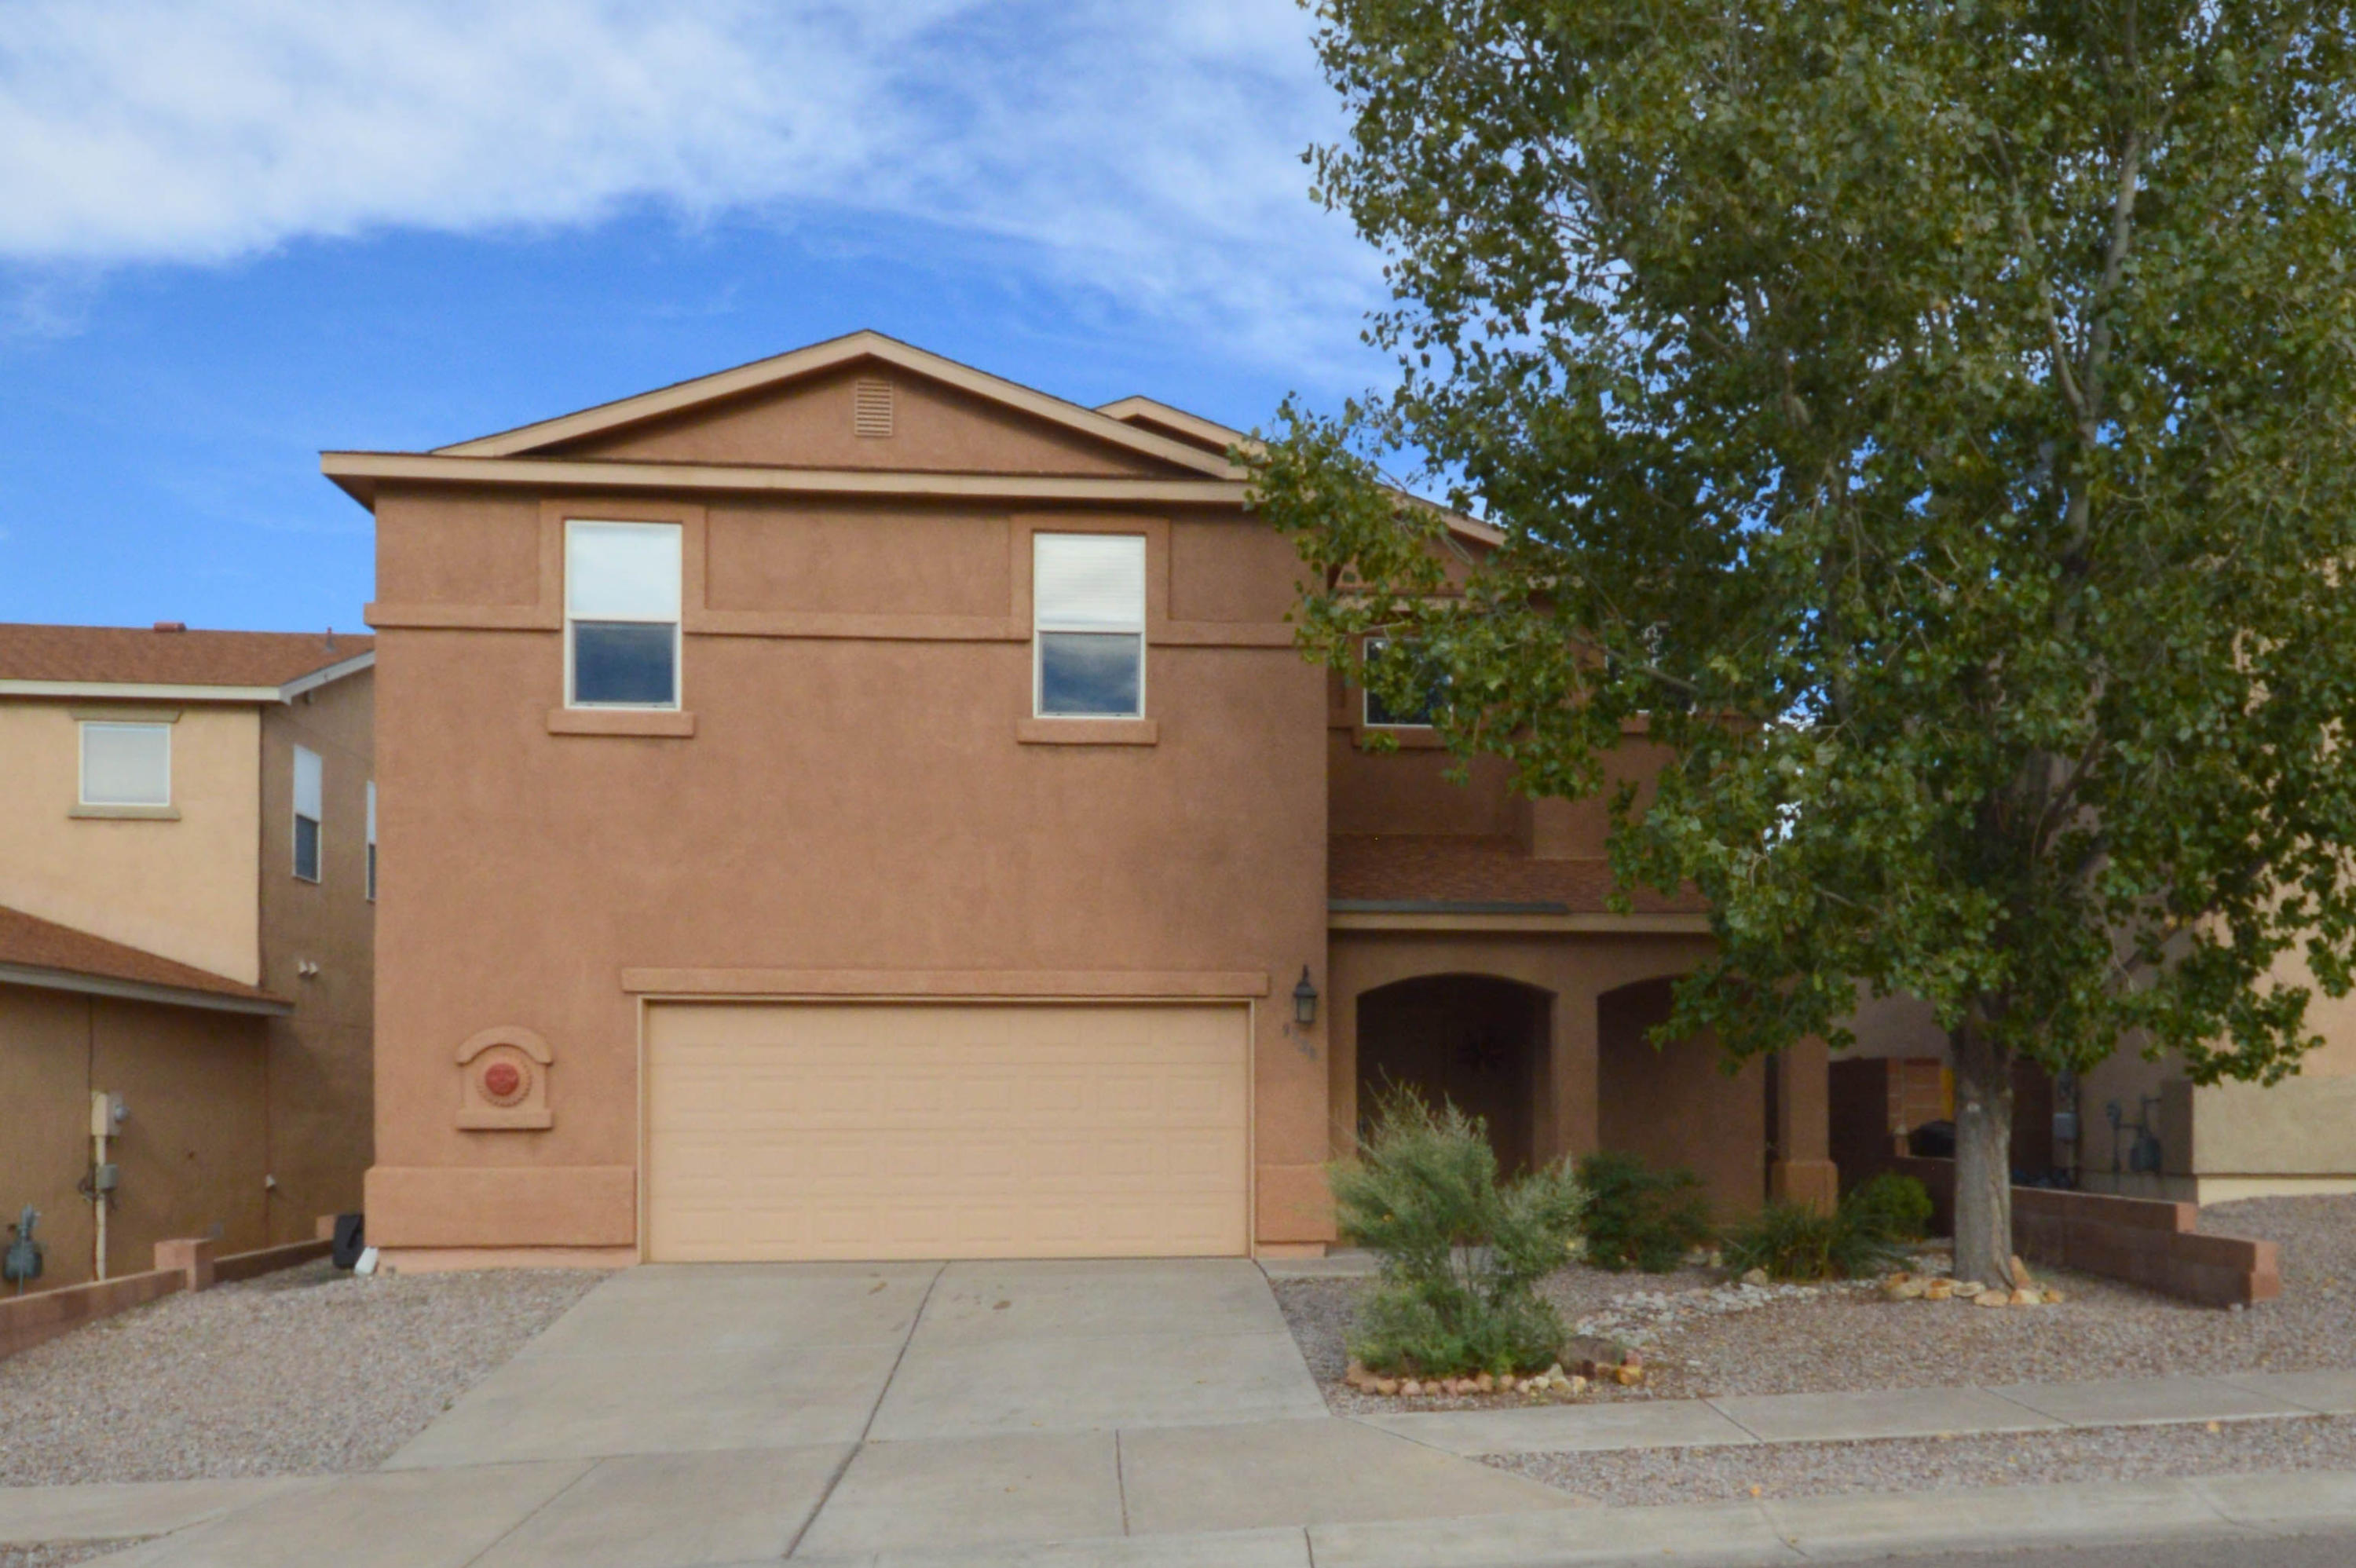 Welcome to this Large House at ''The Trails'' in the popular Ventana Ranch area. You will enjoy living in this master plan community, with paved trails, and a number of parks. Also very near schools and shopping. Home has two large living areas including greatroom and upstairs loft/family room. Kitchen has builtin microwave, smooth top stove and walkin pantry. First floor study/office, could be used as 5th bedroom, ideal for guest or in-laws. Four spacious upstairs bedrooms including master suite with huge walkin closet, bath with two sinks and garden tub. Mountain views from the master bedroom. Come see this great house for yourself!